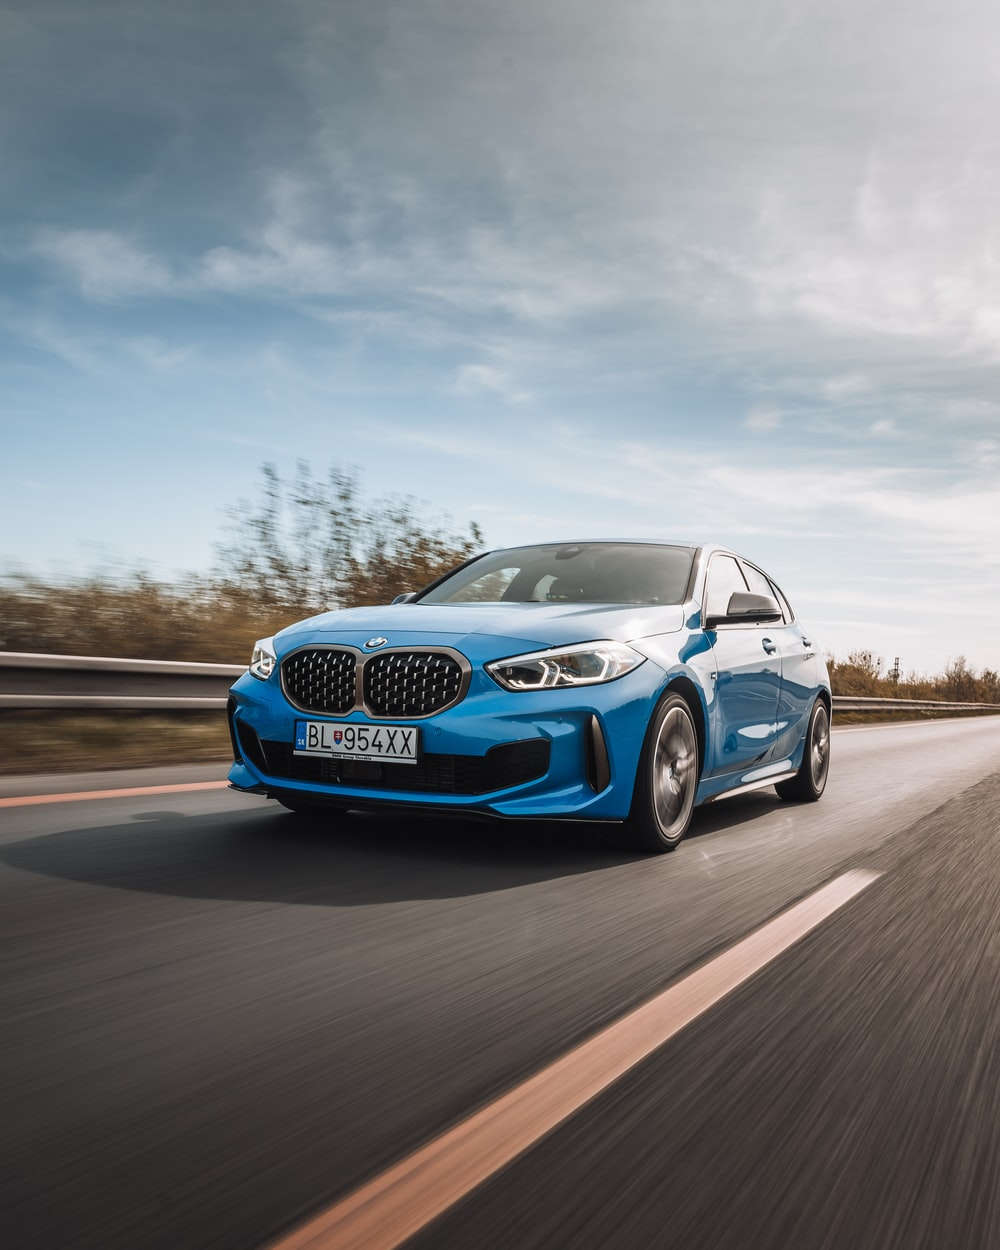 blue bmw m 3 on road during daytime